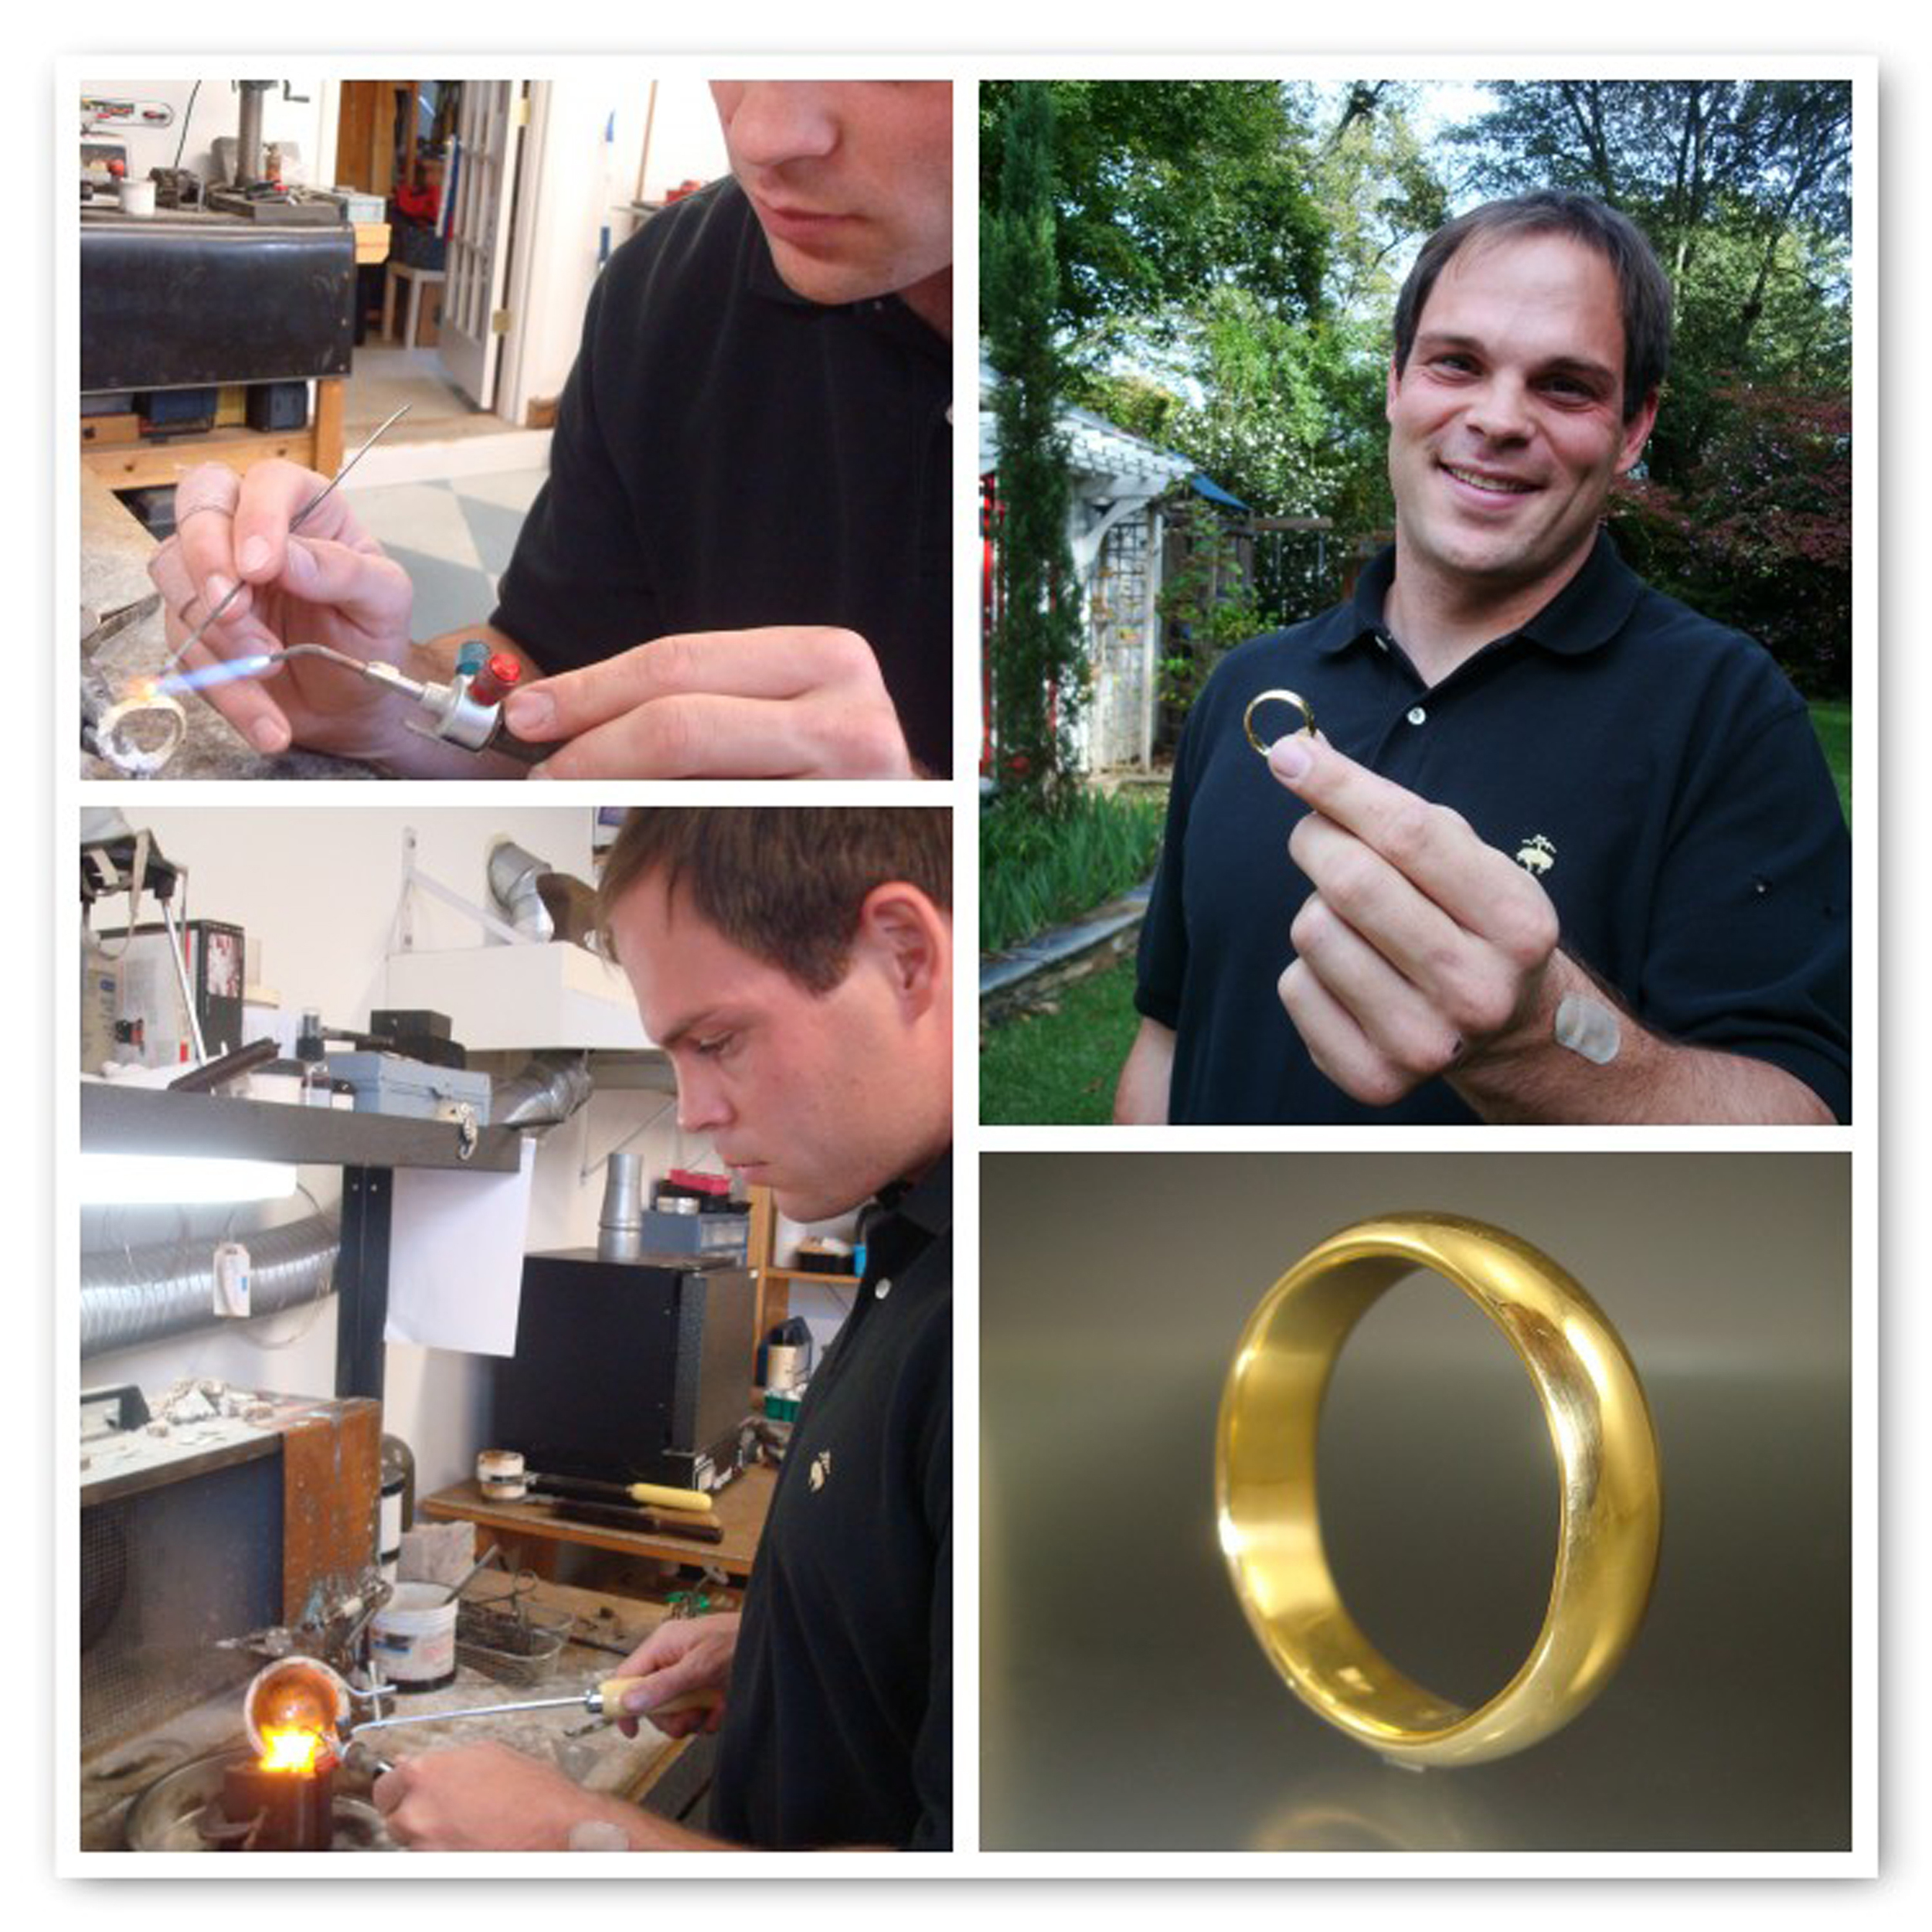 Stephen traveled 475 miles to melt reclaimed gold from a family heirloom into his wedding band!